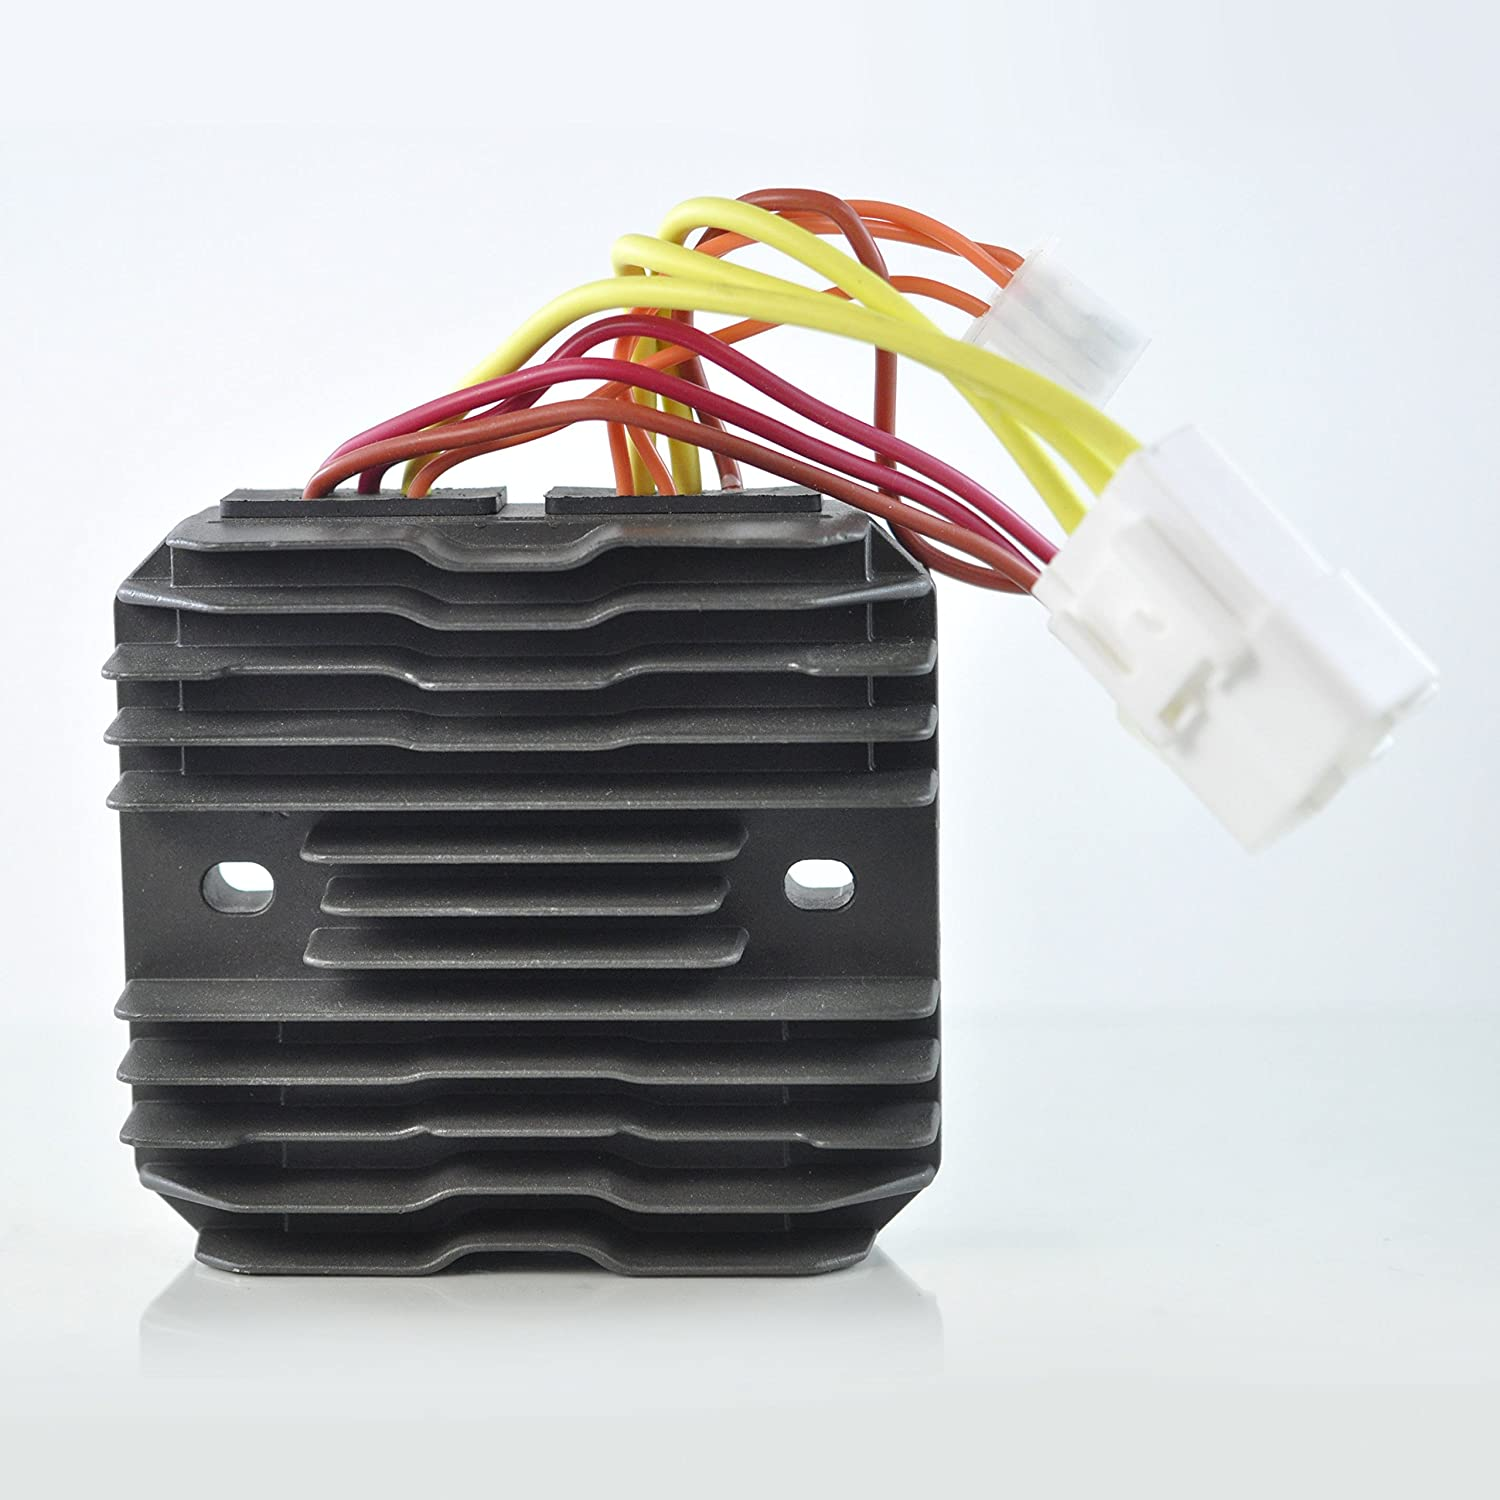 Voltage Regulator Rectifier For Polaris RMK Switchback IQ Cleanfire Dragon 600 700 800 2007 2008 2009 2010 2011 2012 2013 2014 2015 OEM Repl.# 4011731 4012476 4012930 4013587 RMSTATOR